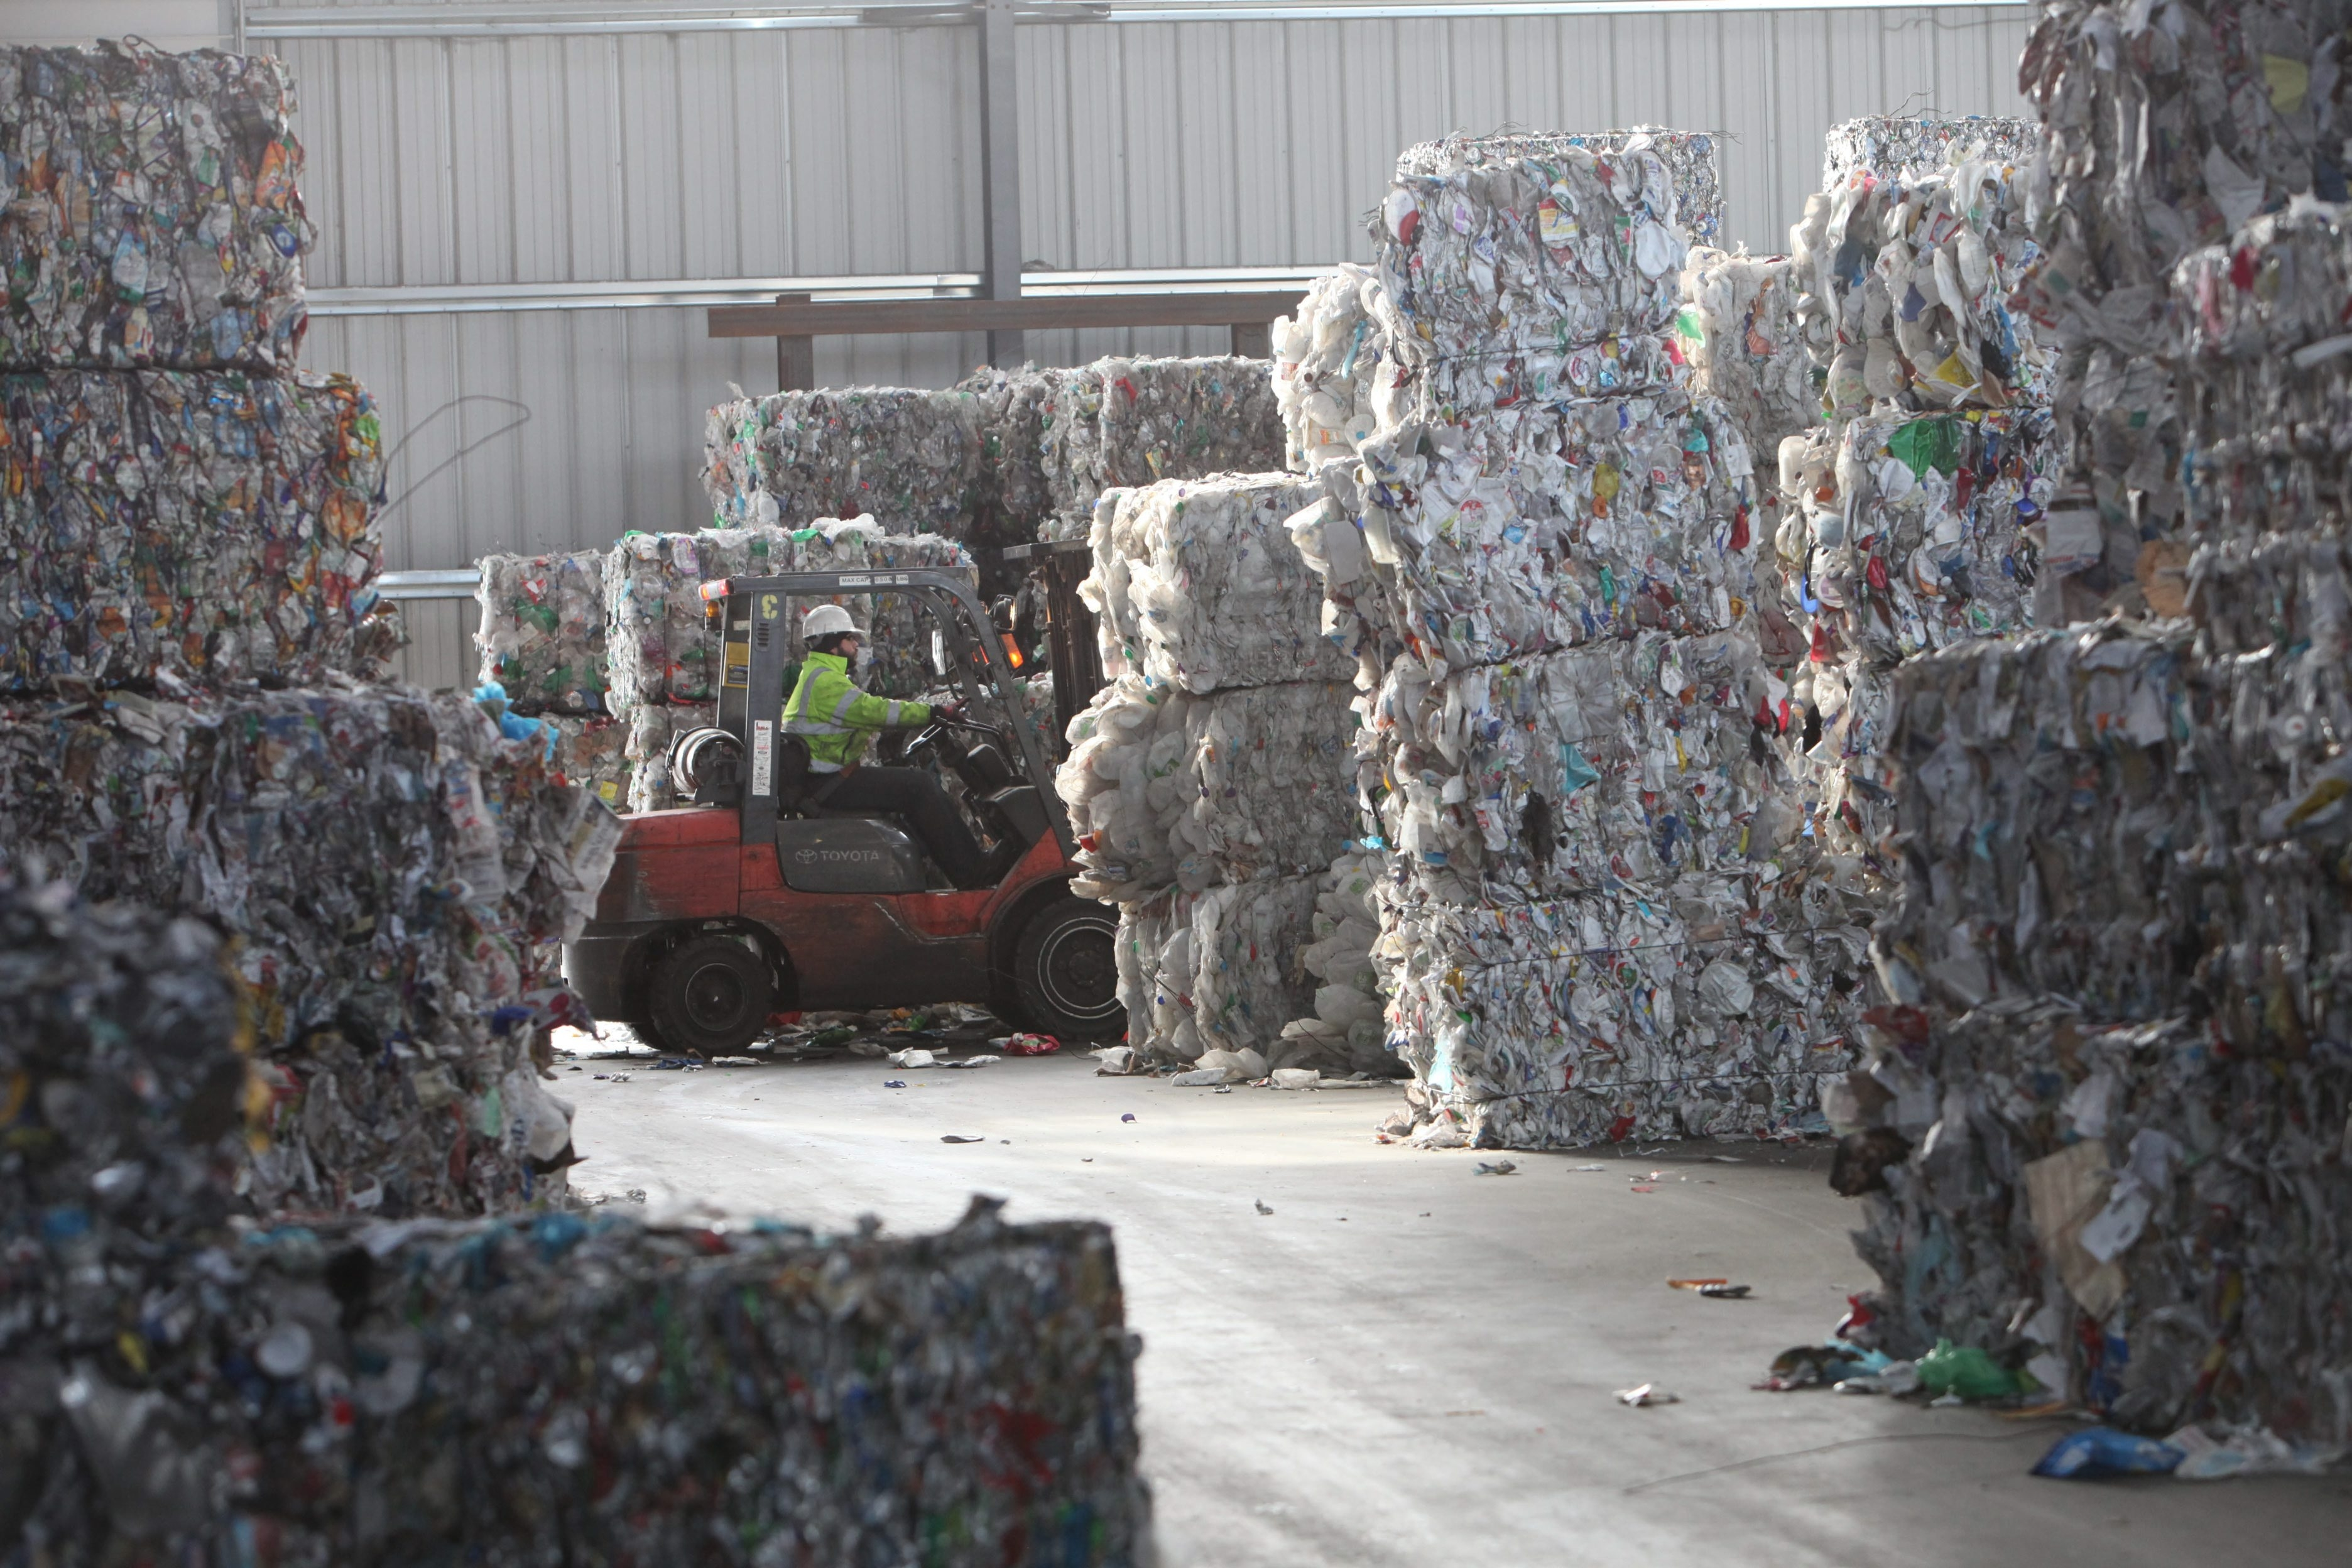 Recyclers, including Buffalo Recycling Enterprises in South Buffalo, would be much busier if community recycling rates came anywhere near the national average.